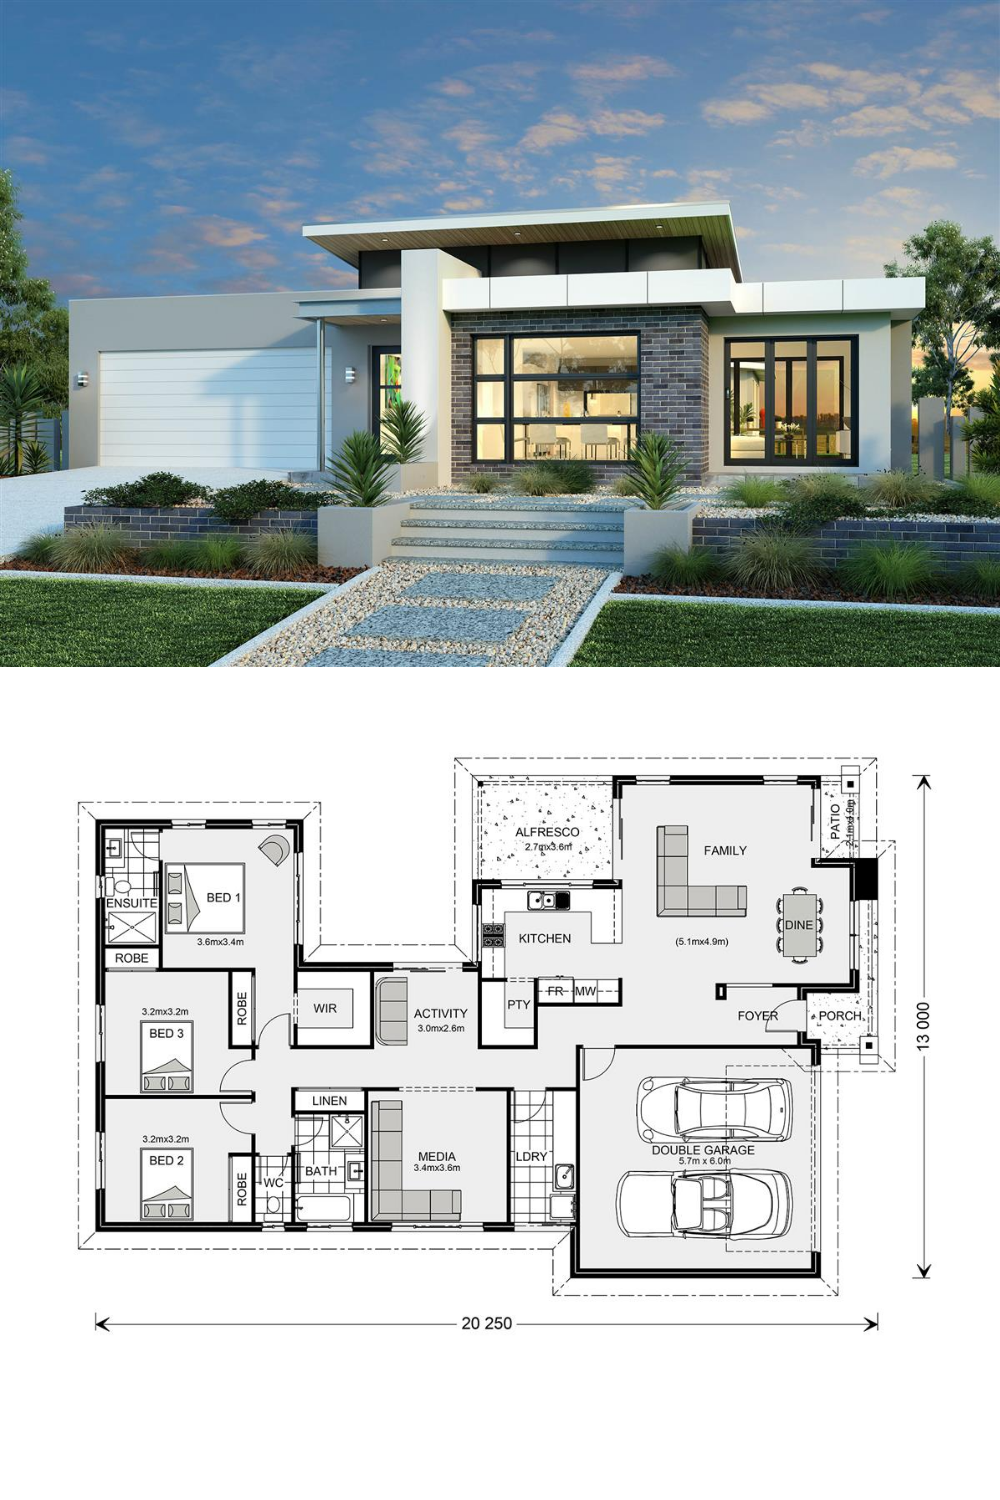 Splendid Three Bedroom Modern House Design Em 2021 Plantas De Casas Projectos De Casas Projetos De Casas Terreas